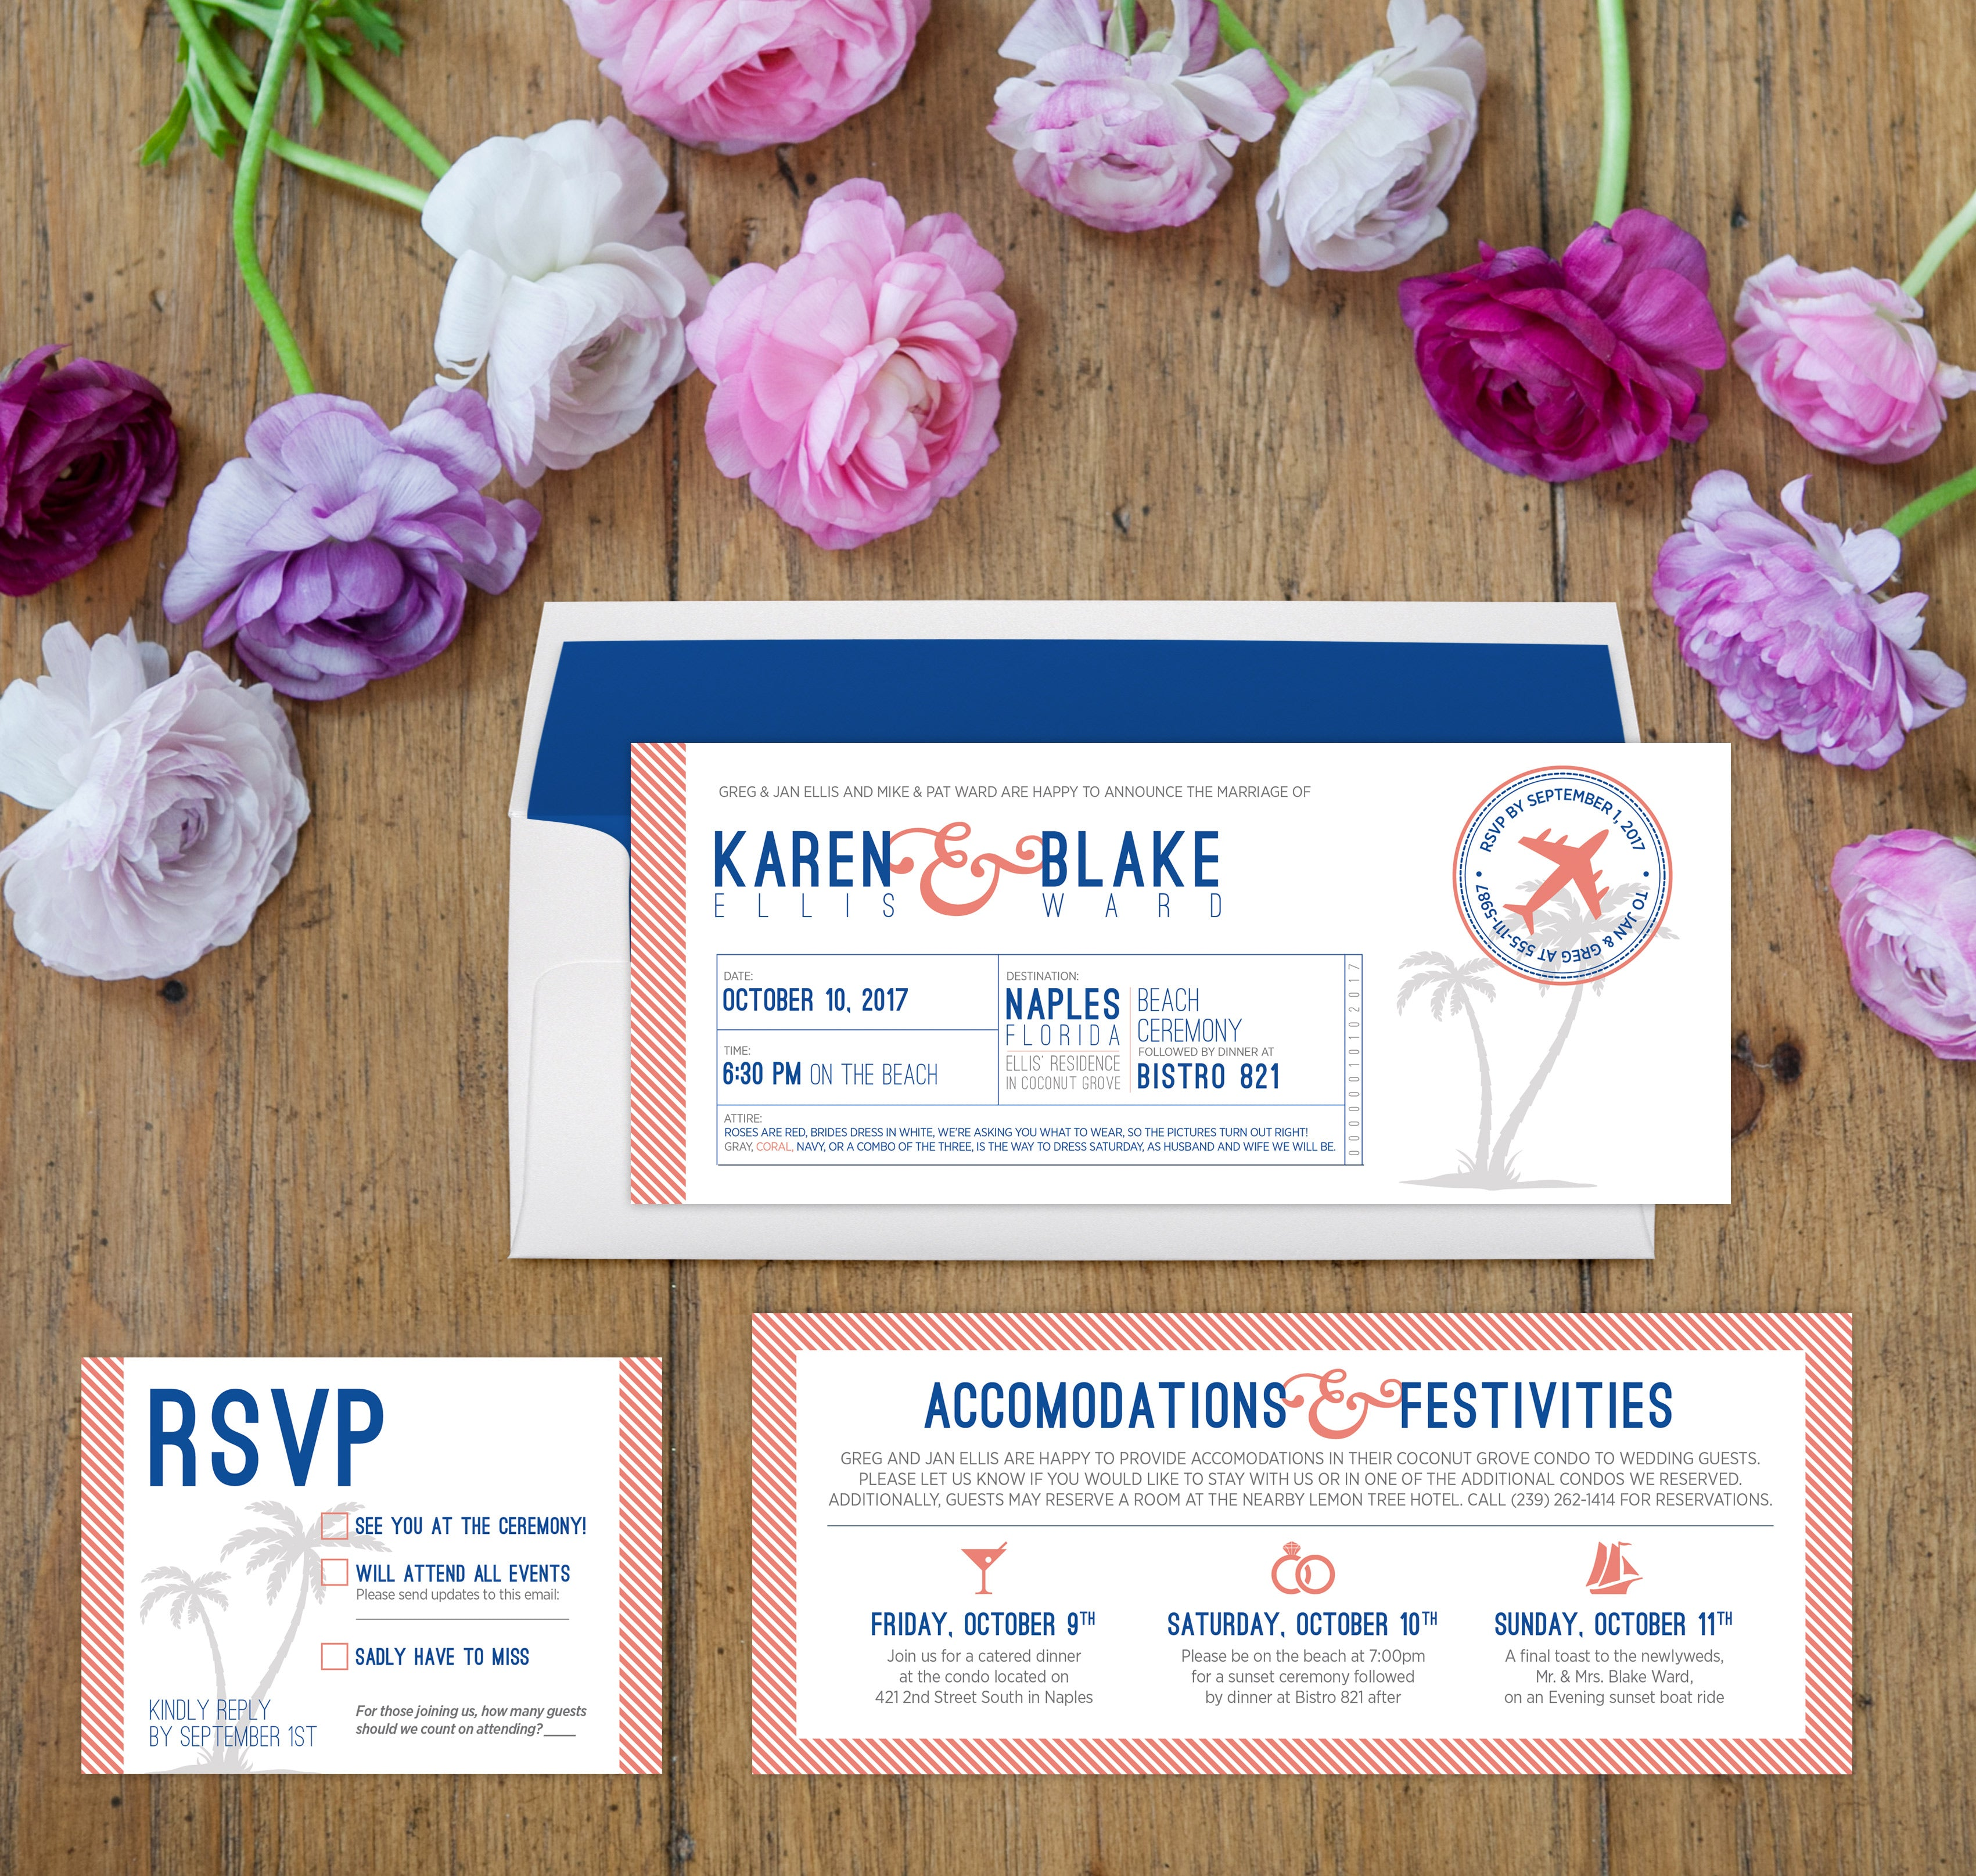 Airline ticket wedding invitations for destination wedding by Munga Vision